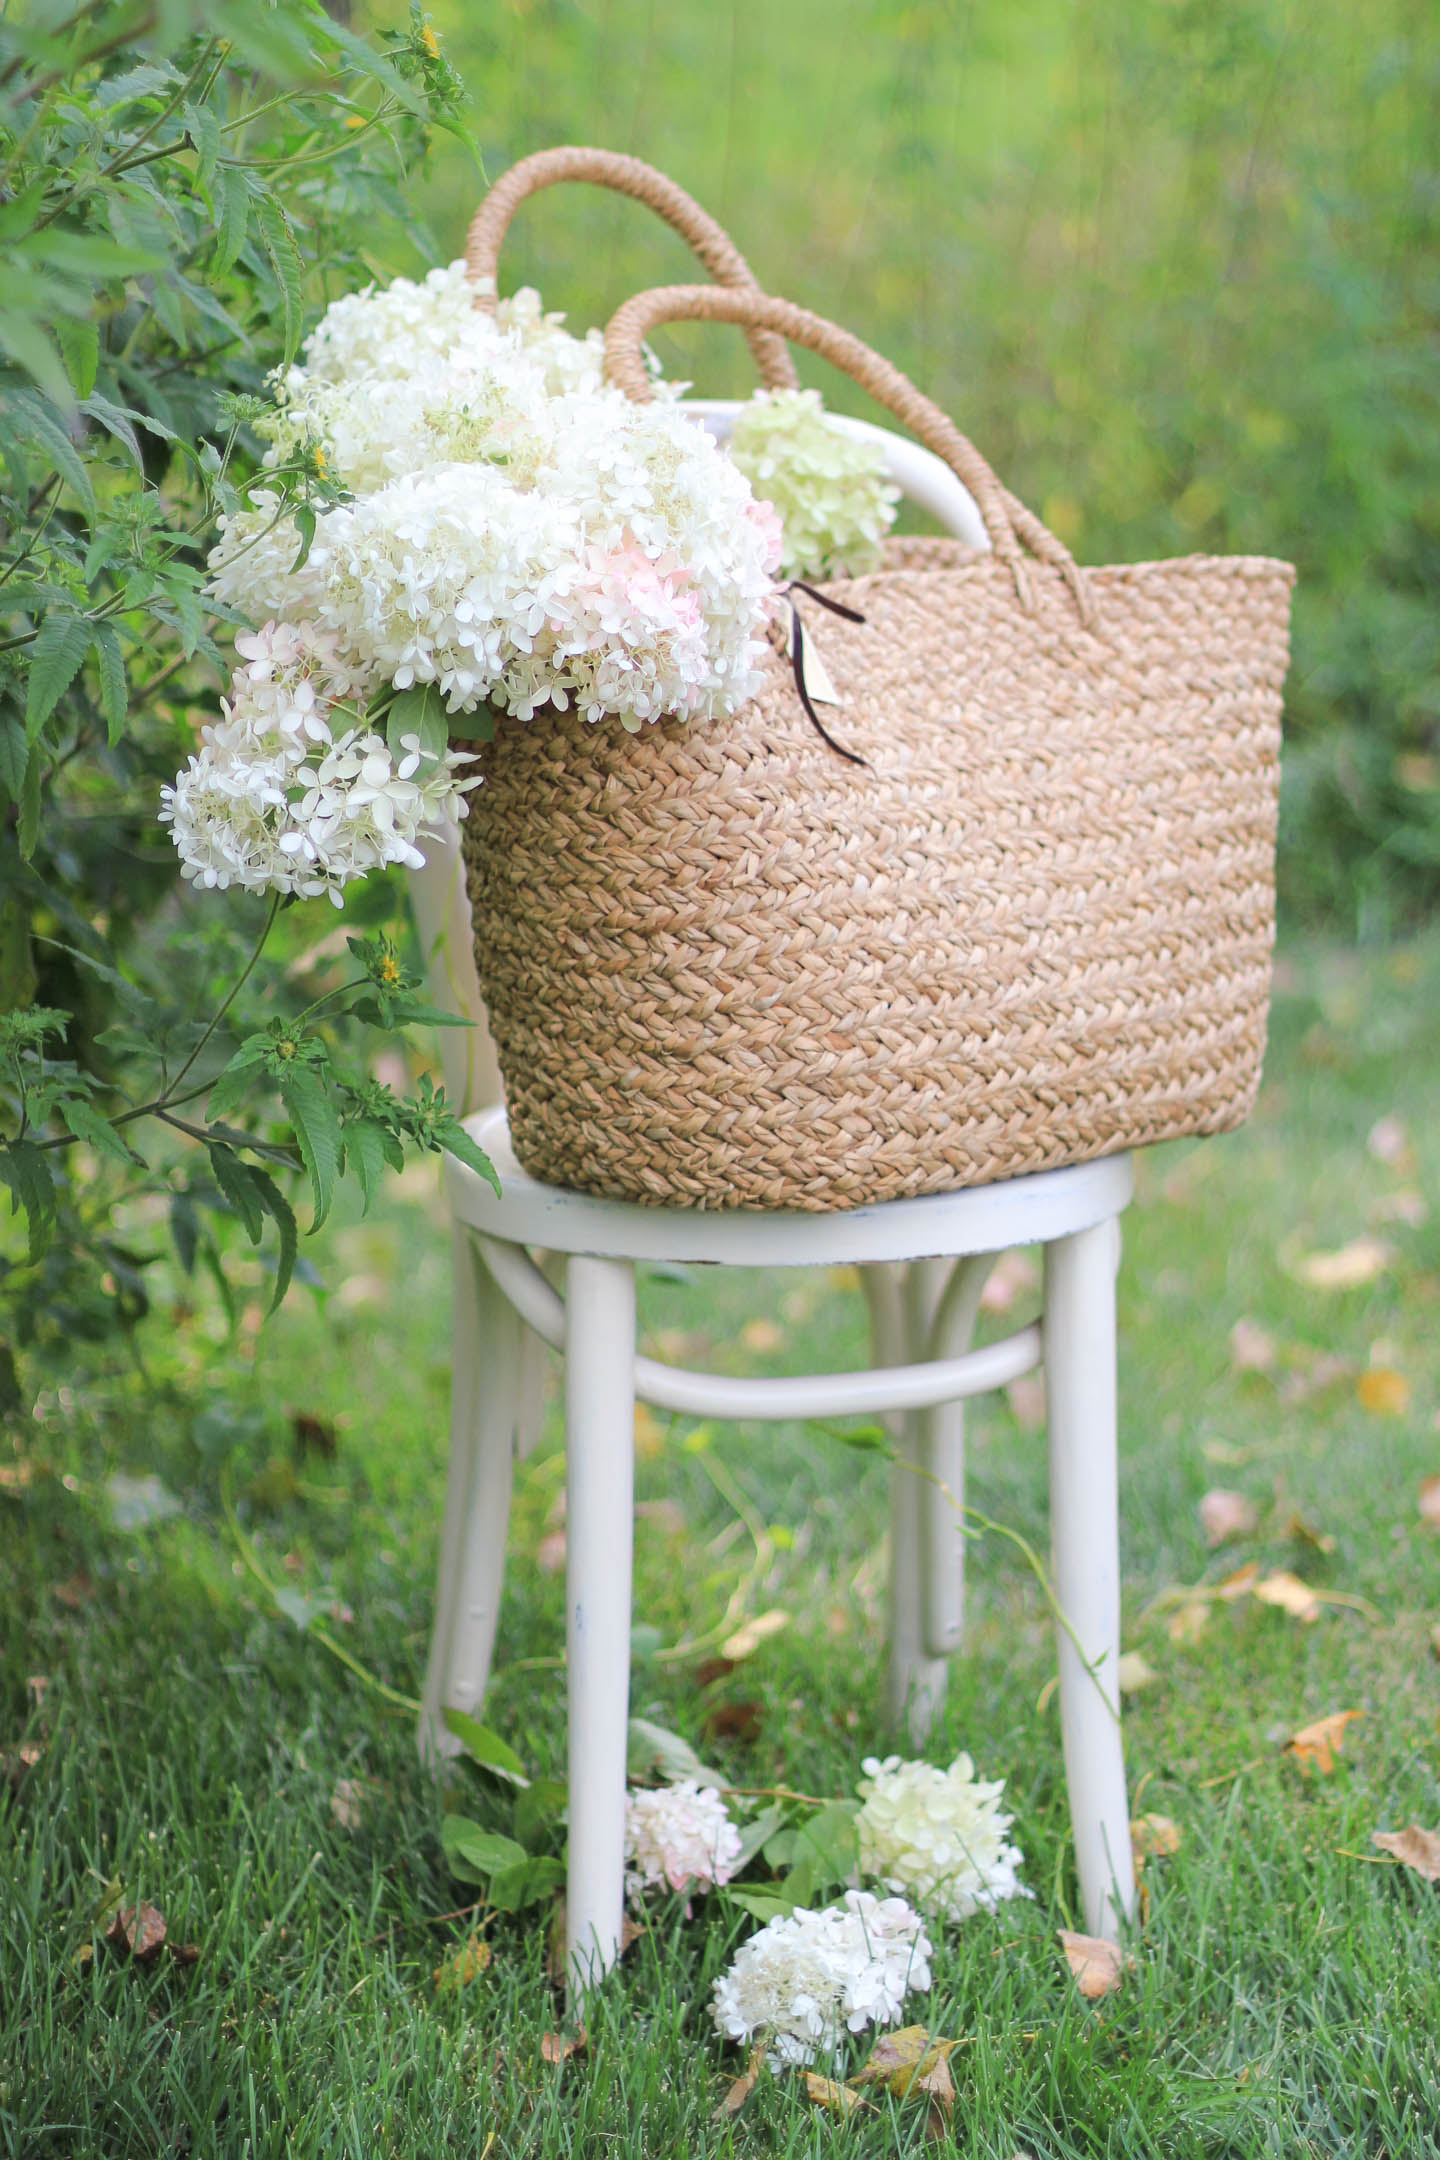 Pee Gee hydrangeas in a woven bag, sitting on a white chair.